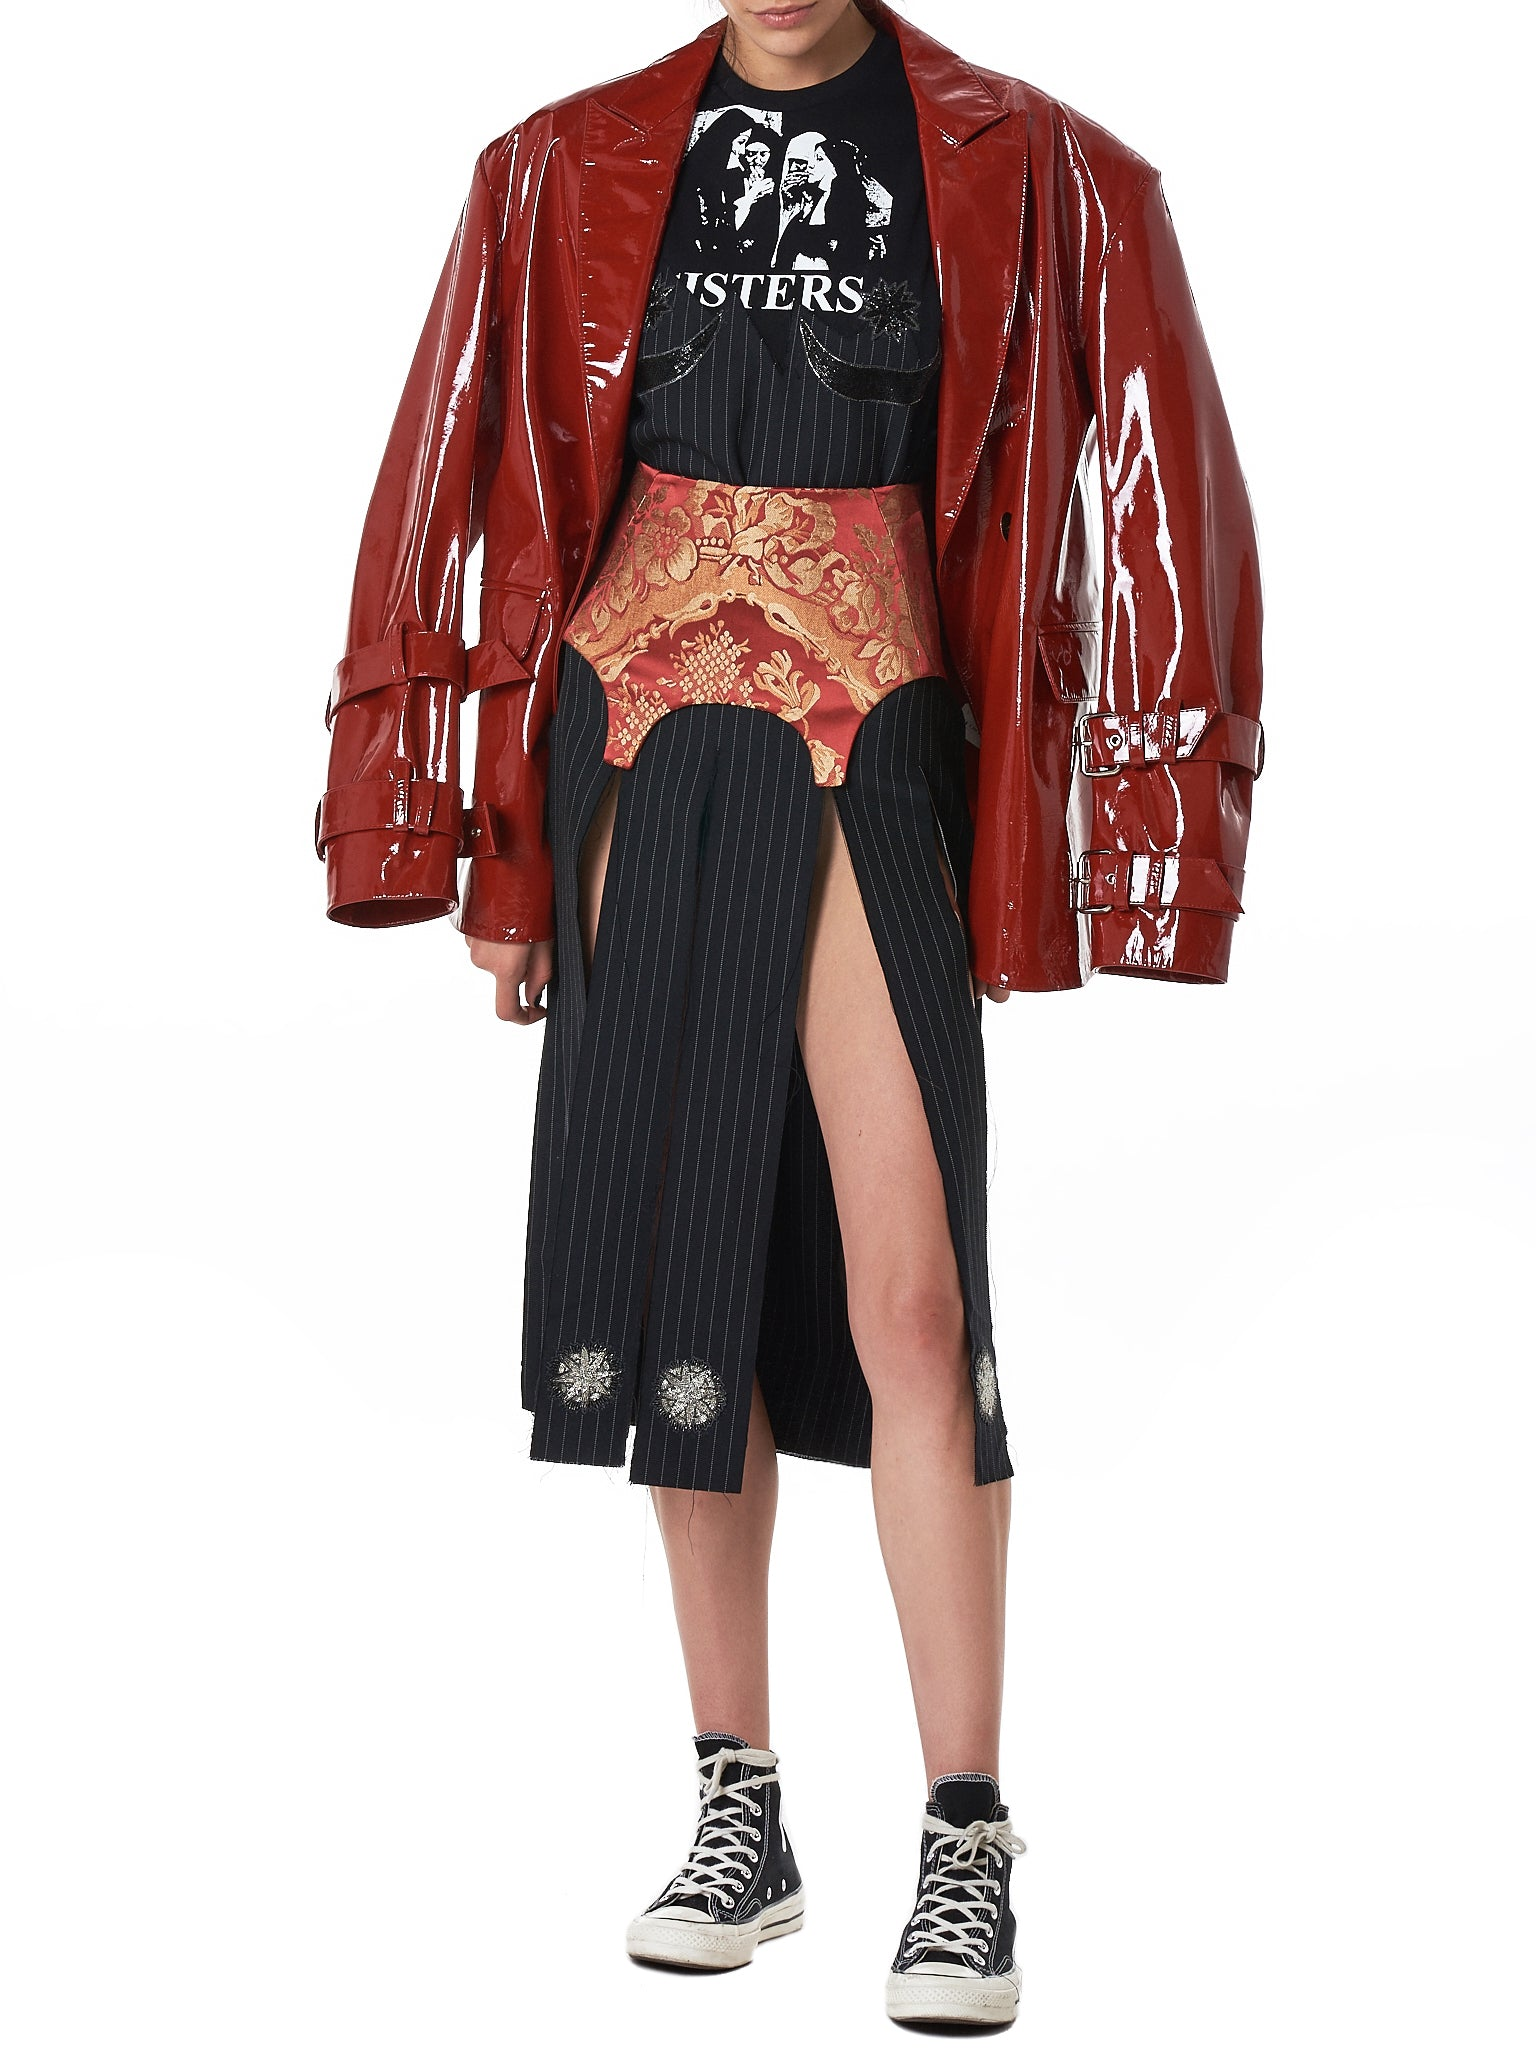 Dilara Findikoglu Leather Jacket - Hlorenzo Style 2